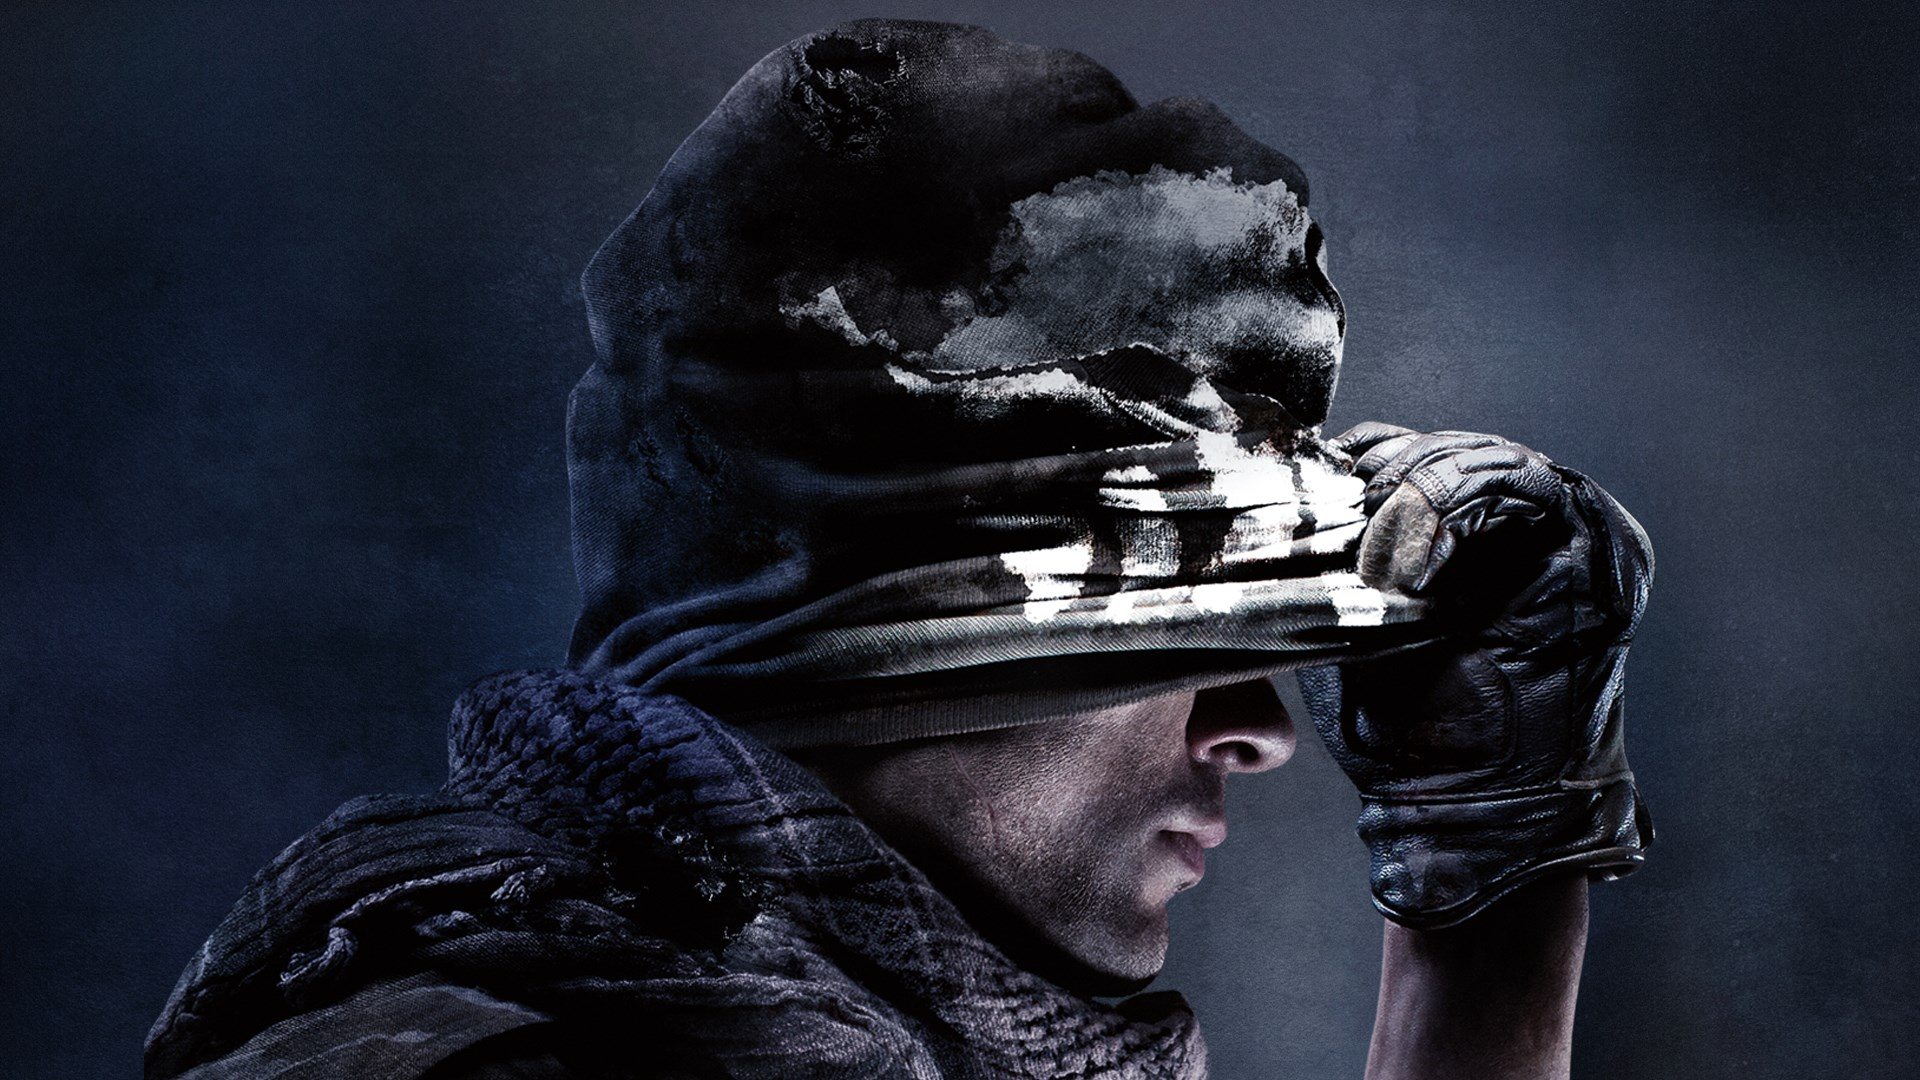 Call of Duty®: Ghosts - Digital Hardened Edition Pack